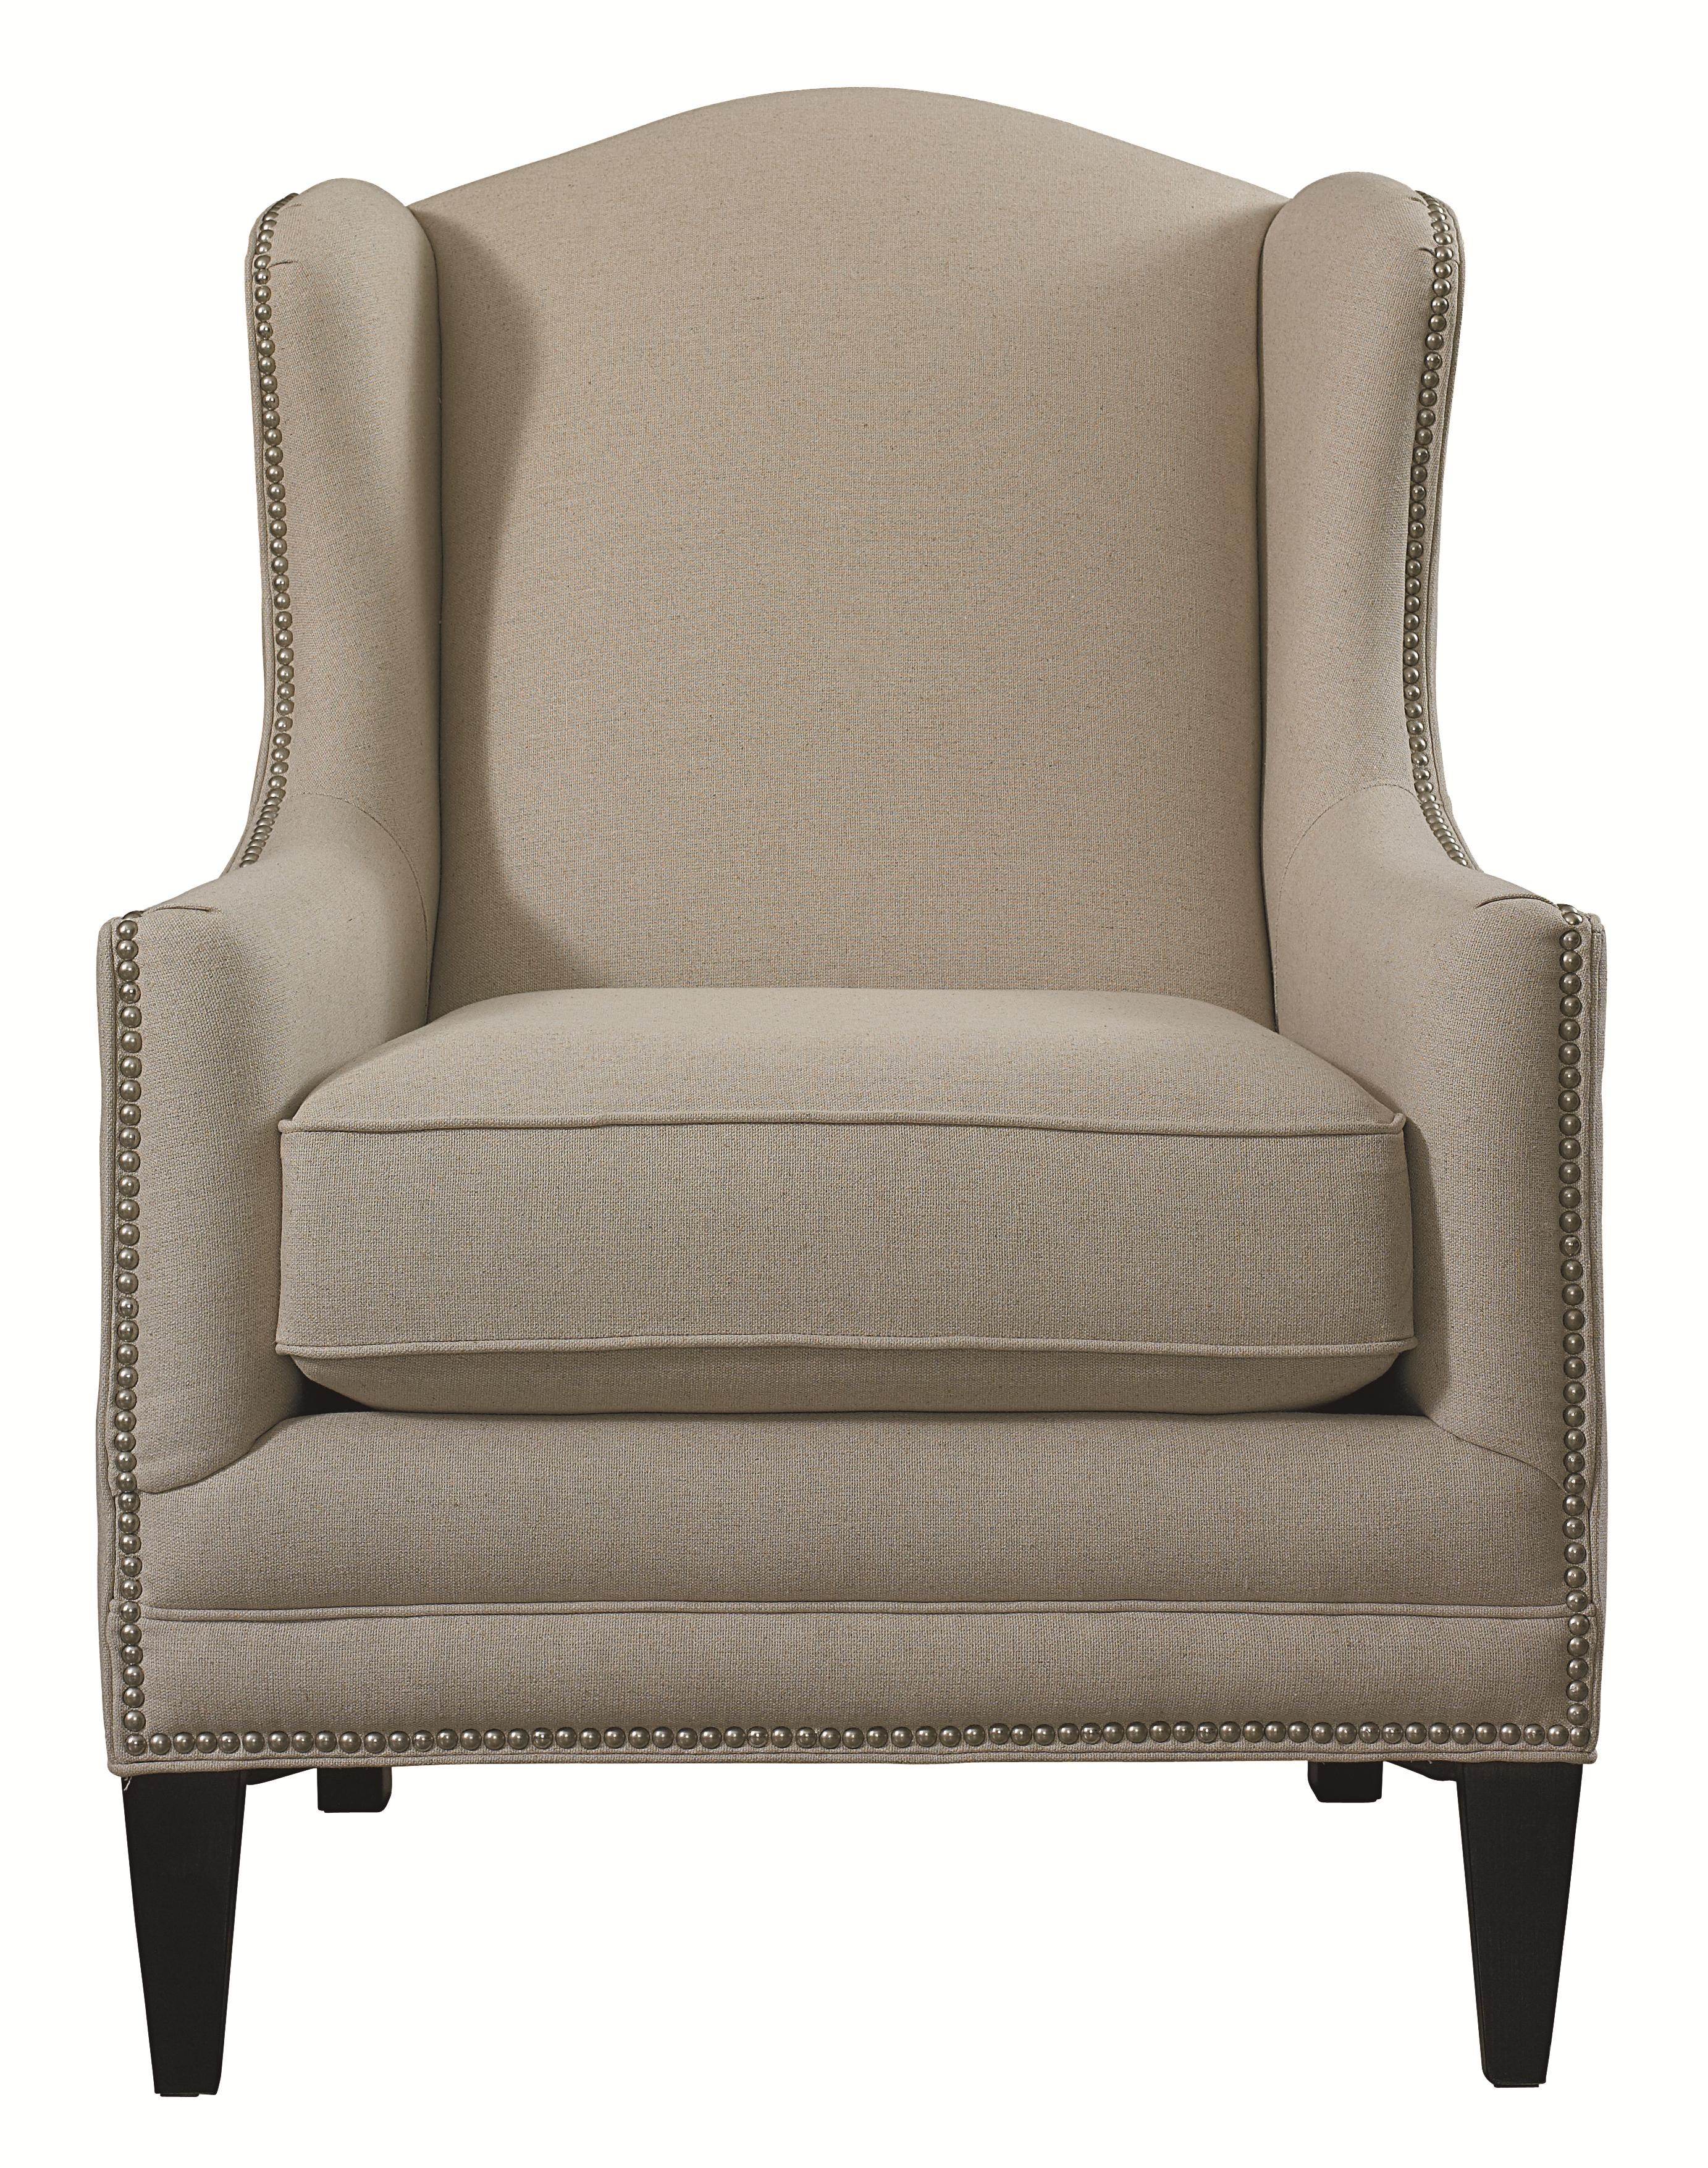 Fleming Accent Chair by Bassett at Suburban Furniture